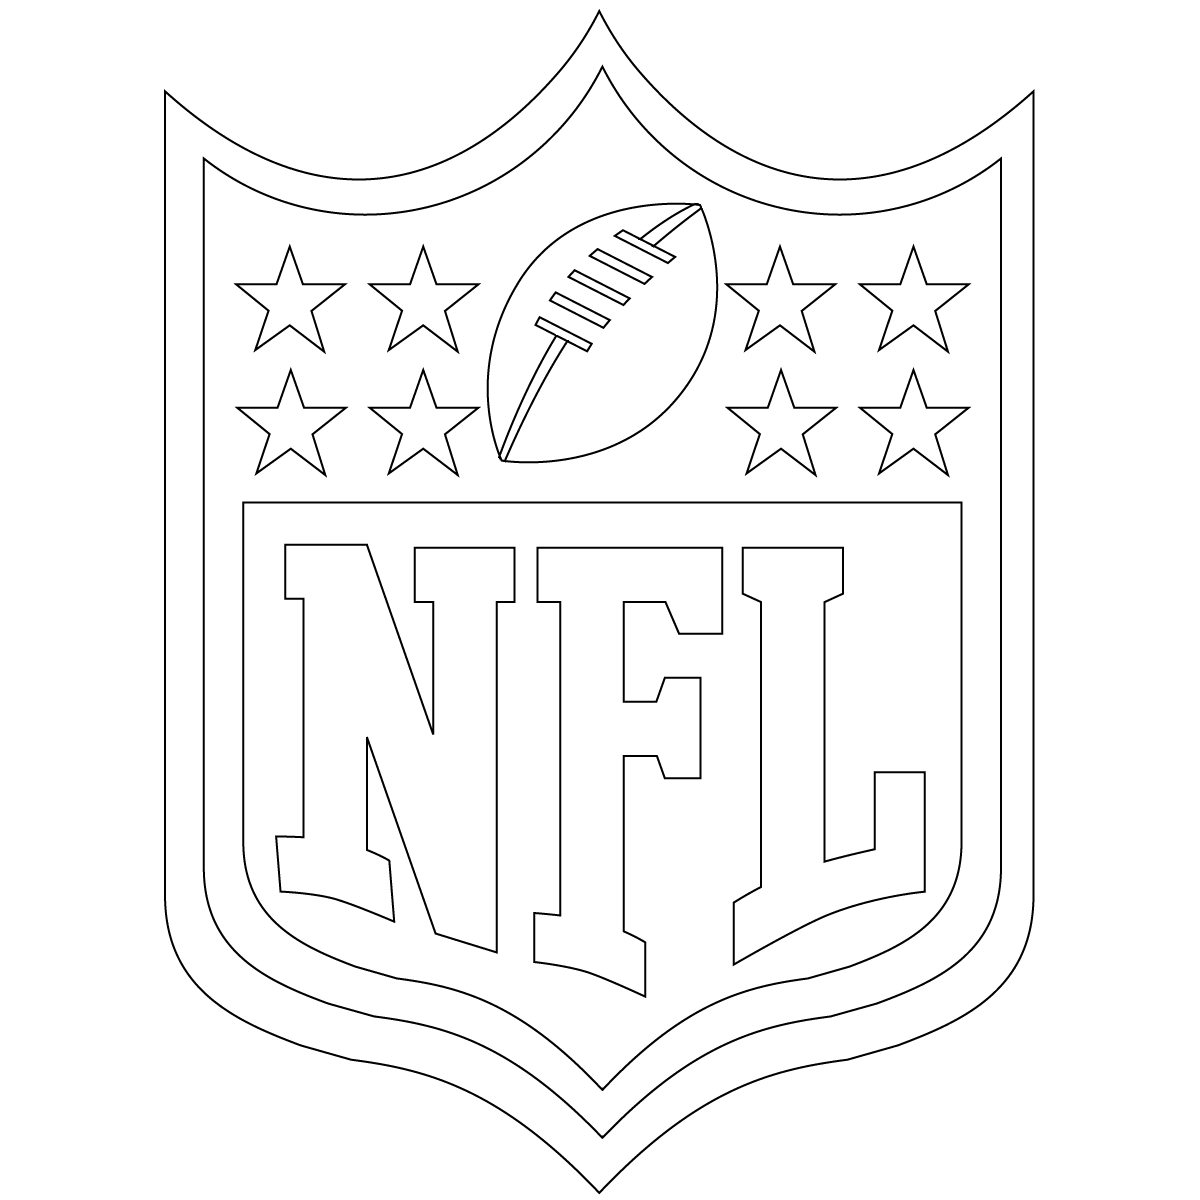 nfl football pictures to color football coloring pages sheets for kids football color nfl pictures football to